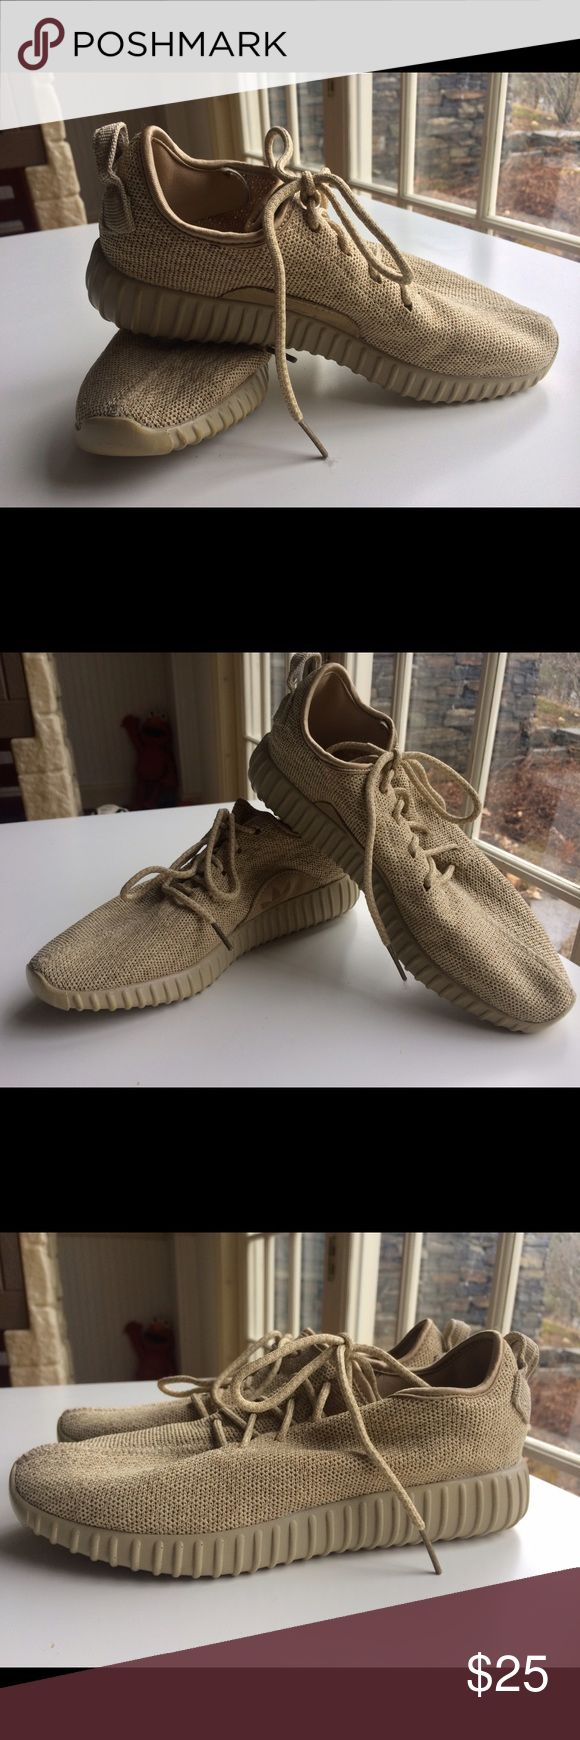 Adidas Yeezy Boost Sneakers Not original Adidas Yeezy Boost inspired by Kanye West. Look like original! The size 7 runs big. Worn once, very comfy in very good condition. Adidas Shoes Sneakers